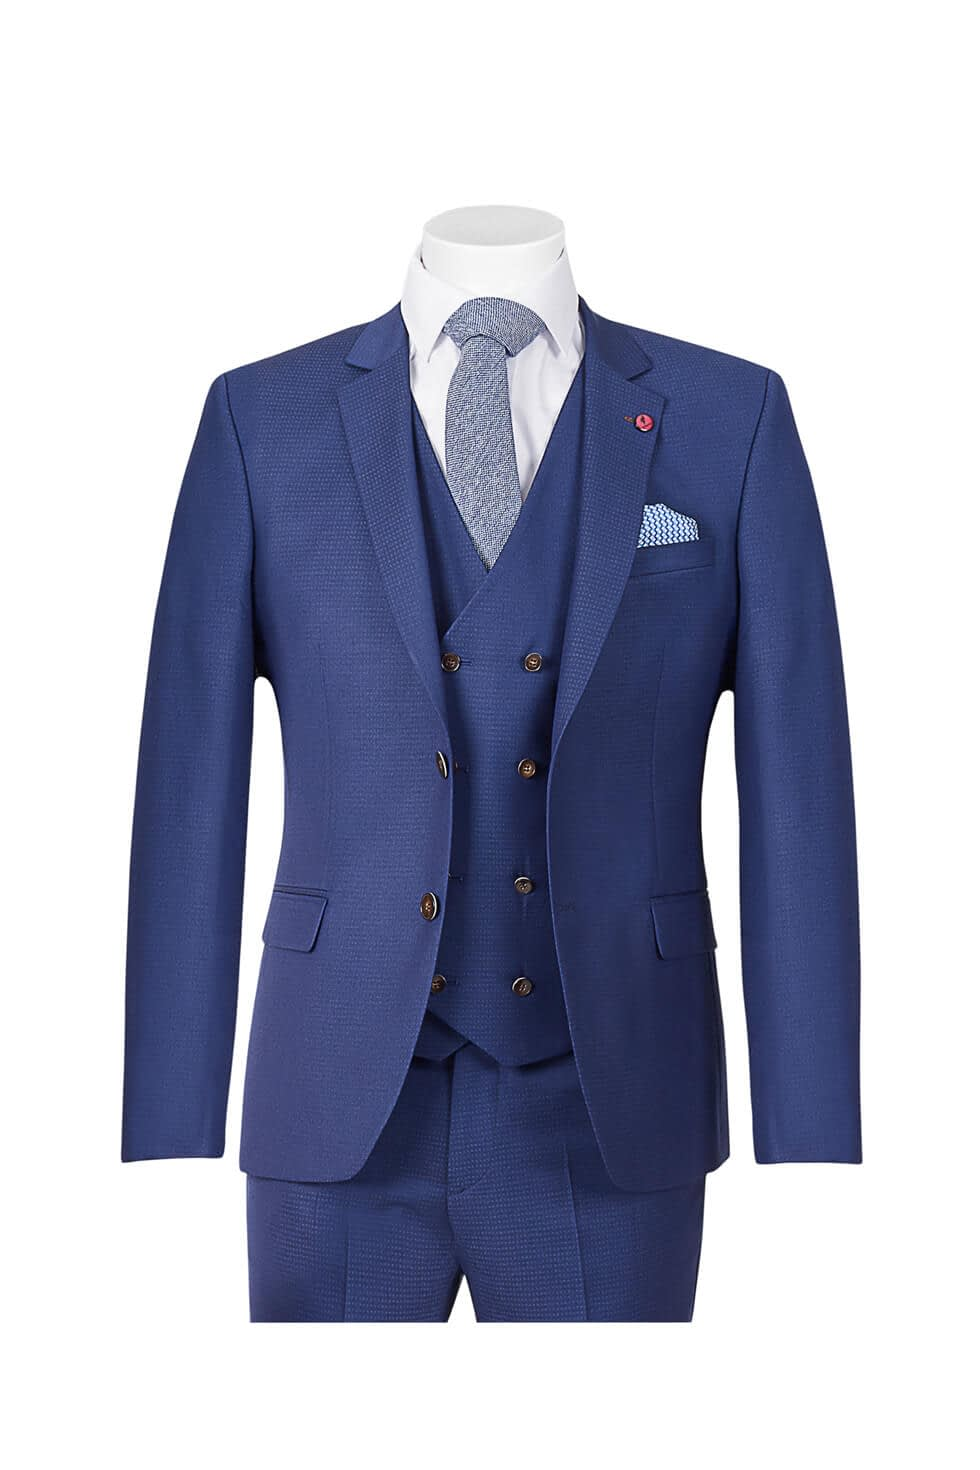 Ink Blue Lounge Suit